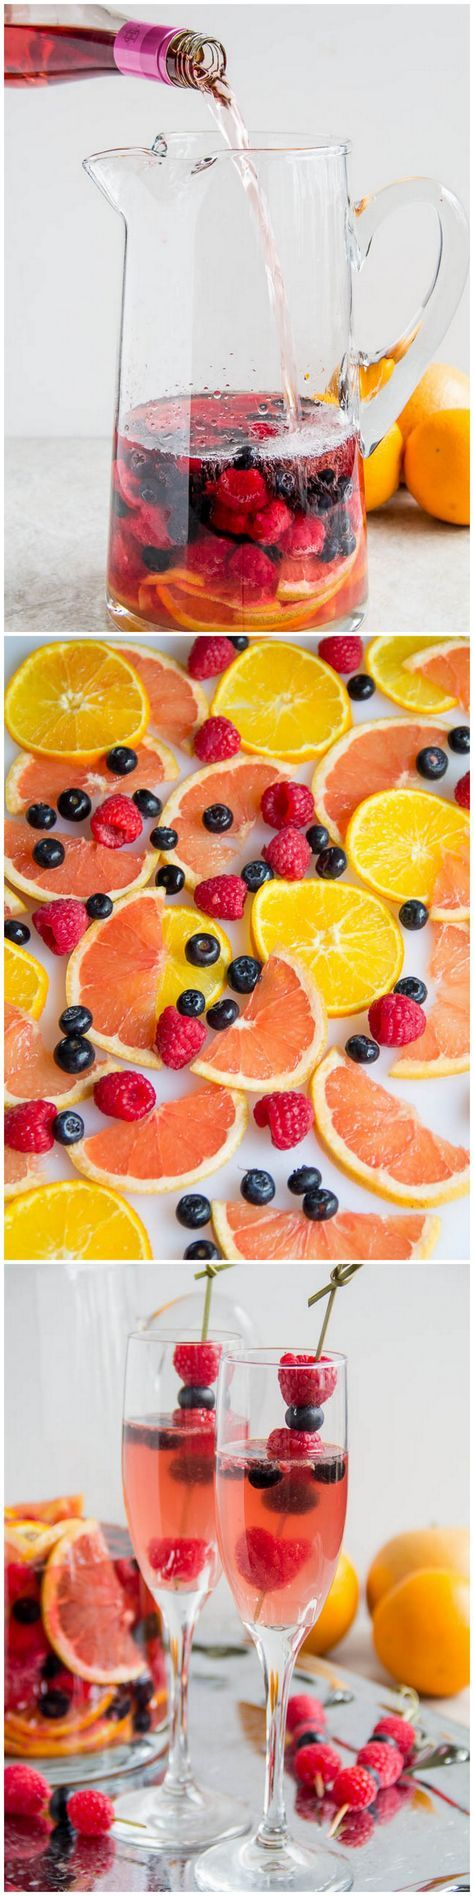 Fruity Moscato Sangria • 1 cup sugar • 1 cup water • 1 cup raspberries • ½ cup blueberries • 1 orange, thinly sliced • 1 grapefruit, thinly sliced • ¼ cup triple sec • 1 bottle (750ml) #BulletinPlace Moscato